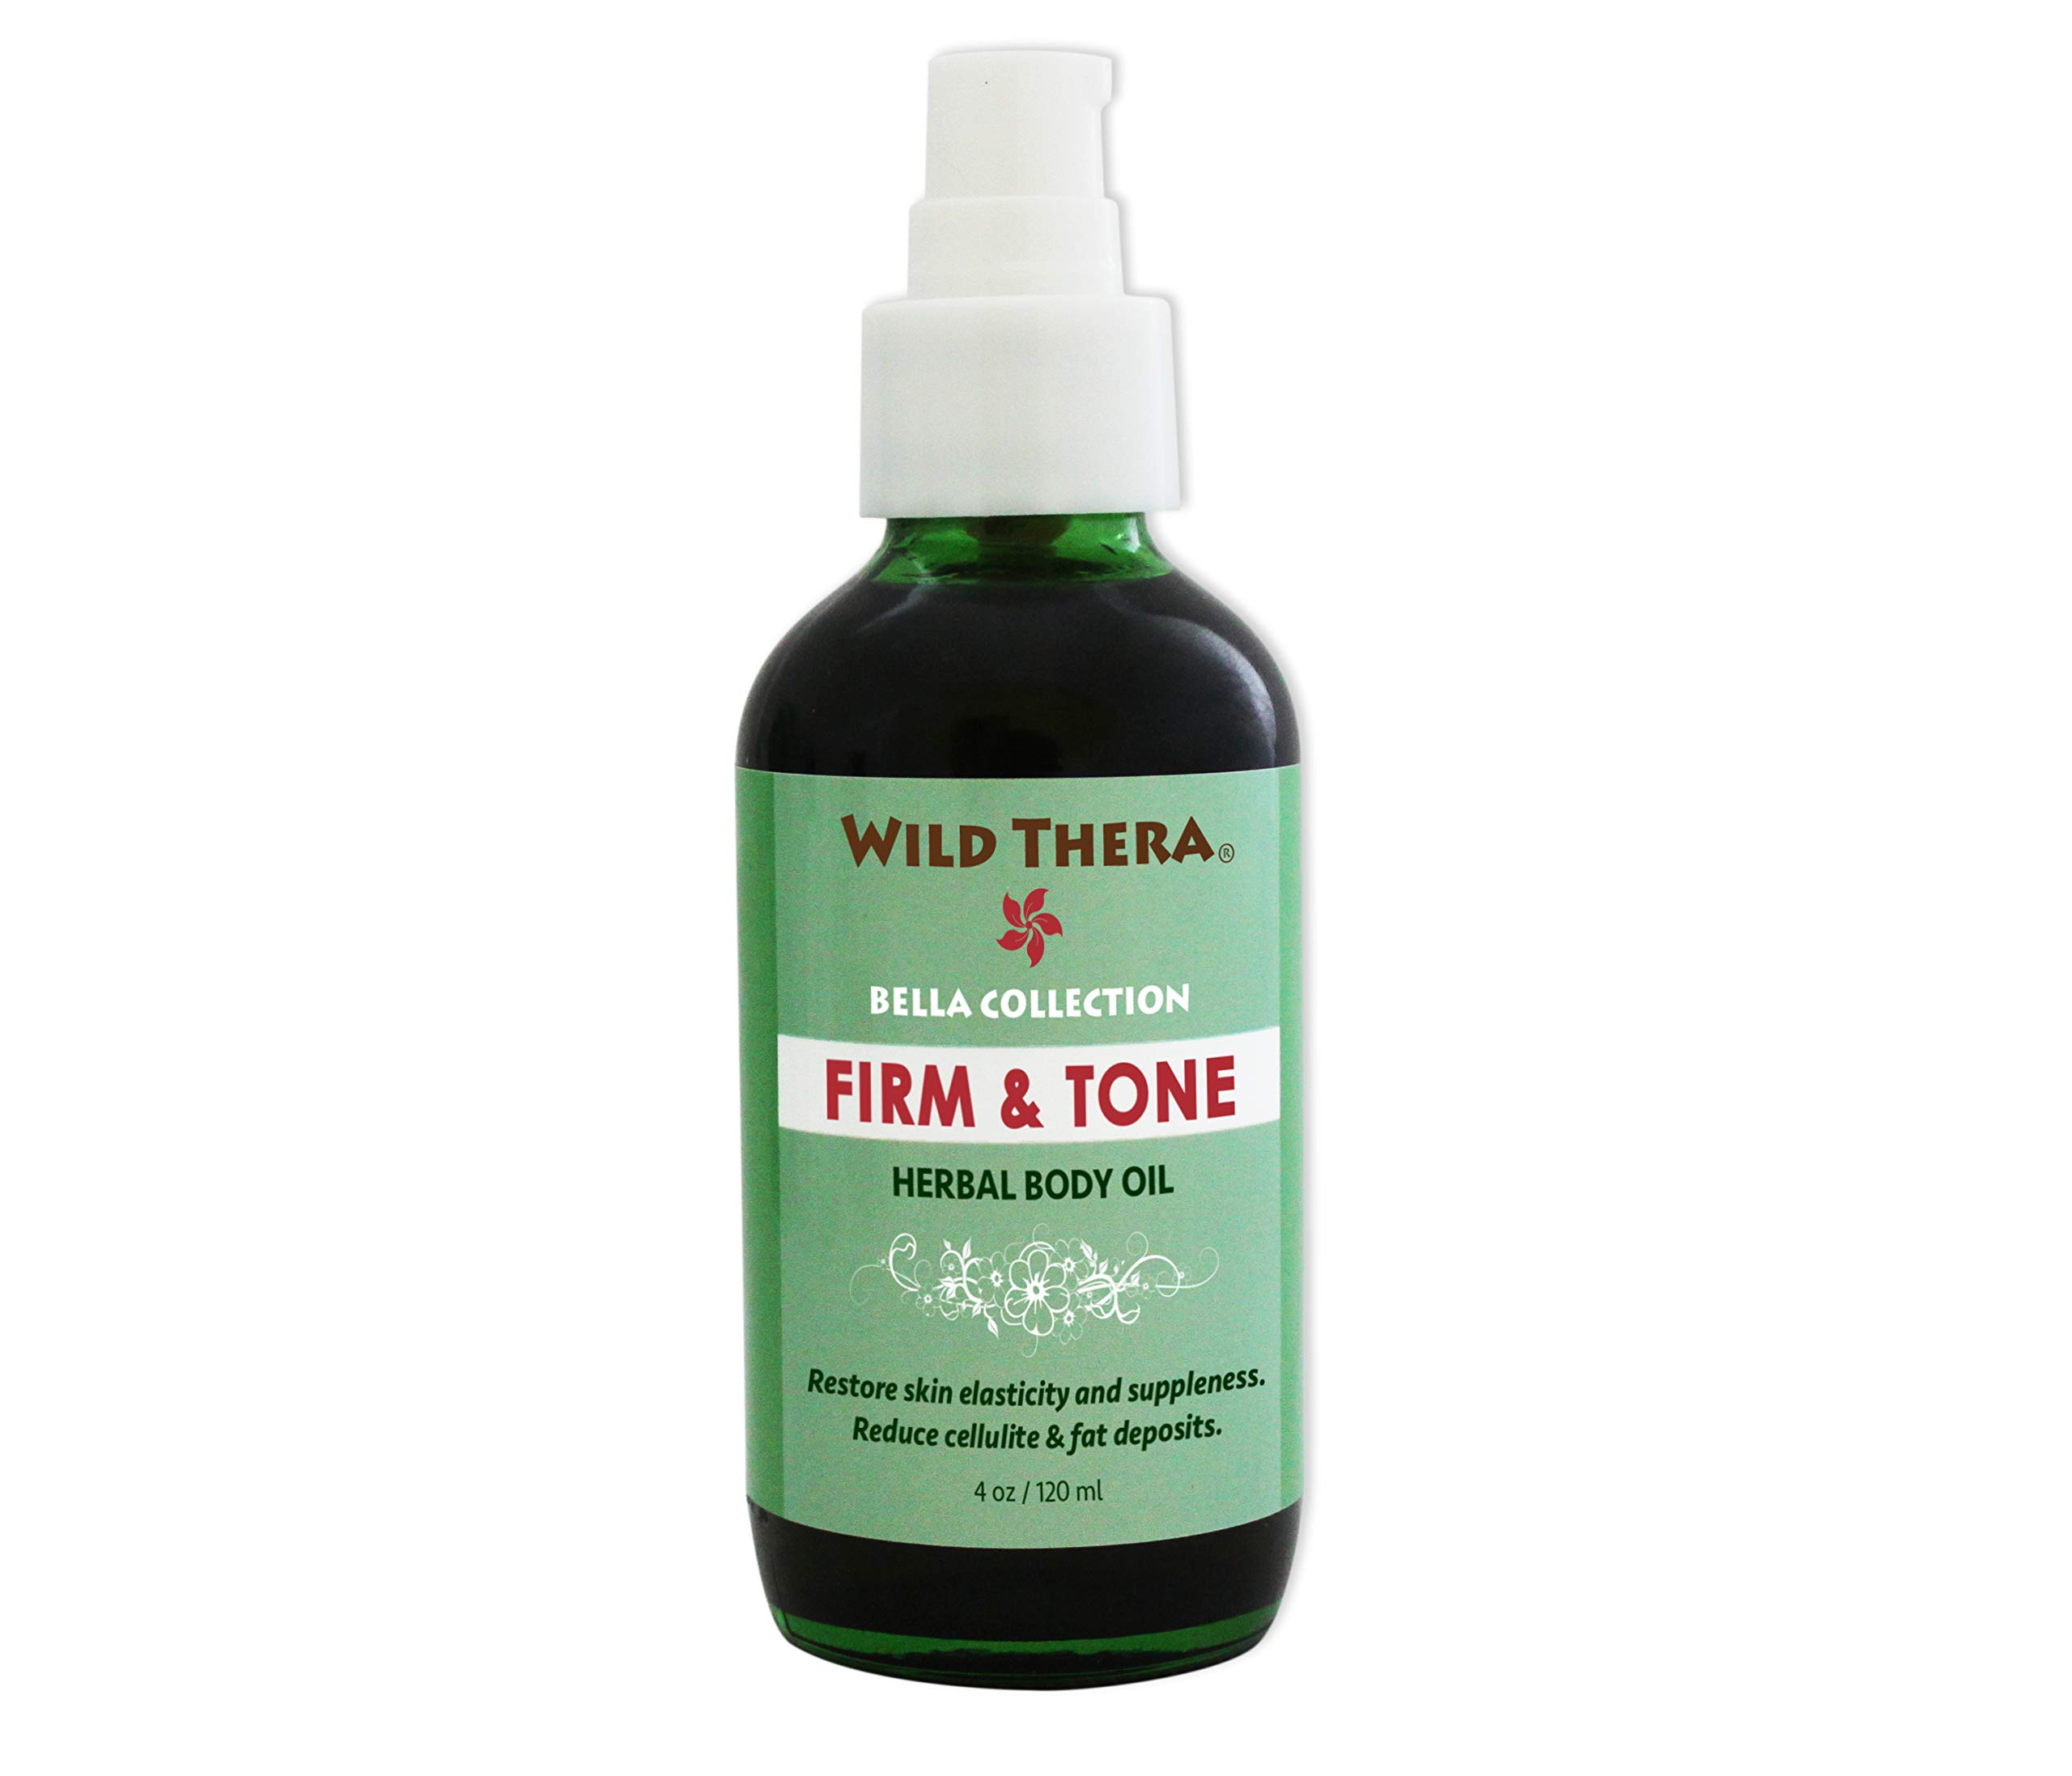 Wild Thera Herbal Skin Firm & Tone Organic Natural Anti Cellulite treatment to remove unwanted body fat, fatty deposits and tighten sagging flabby skin. Penetrate skin for weight loss and slim waist. by Wild Thera